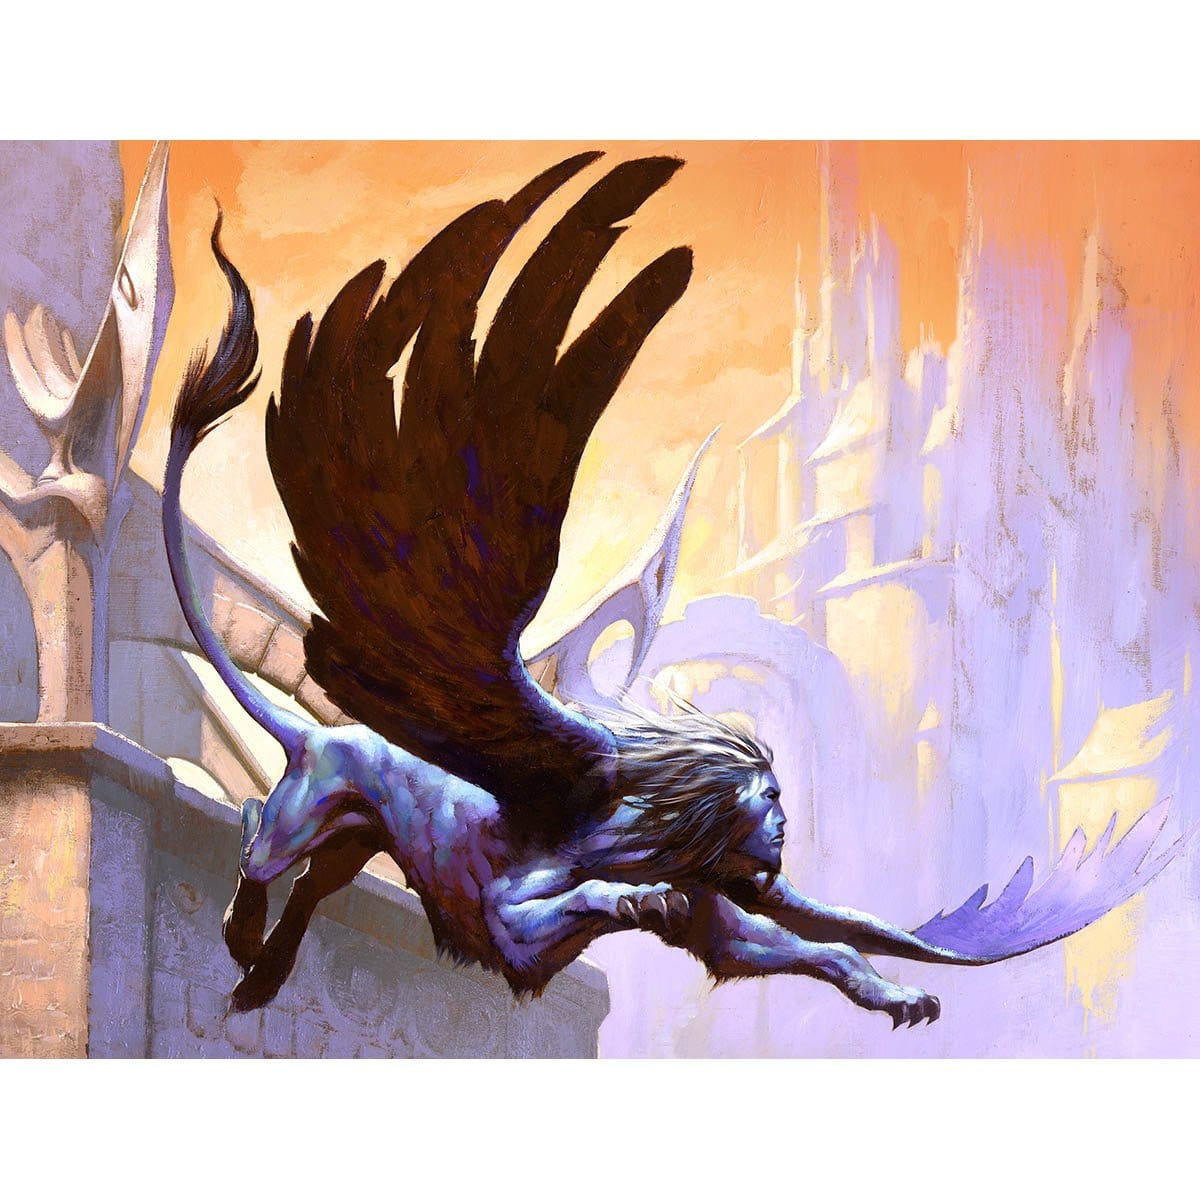 Cerulean Sphinx Print - Print - Original Magic Art - Accessories for Magic the Gathering and other card games